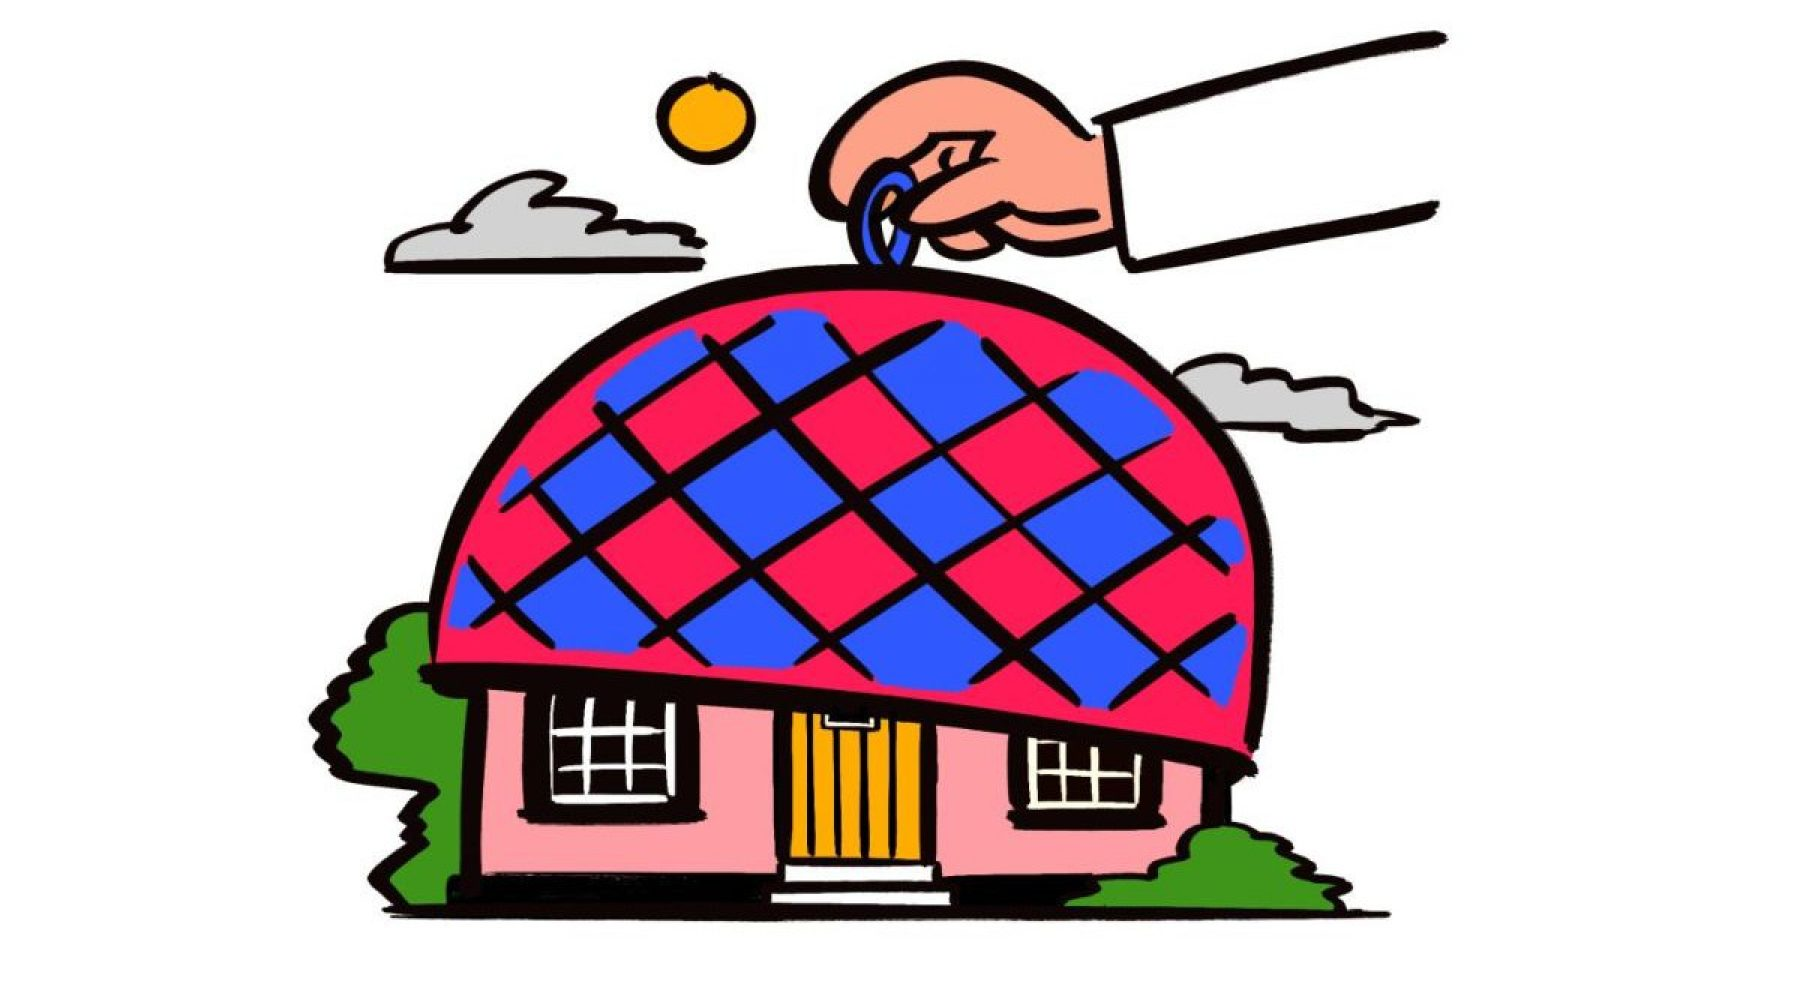 Image for 'What could be more exciting than putting a tea cosy on a house?'